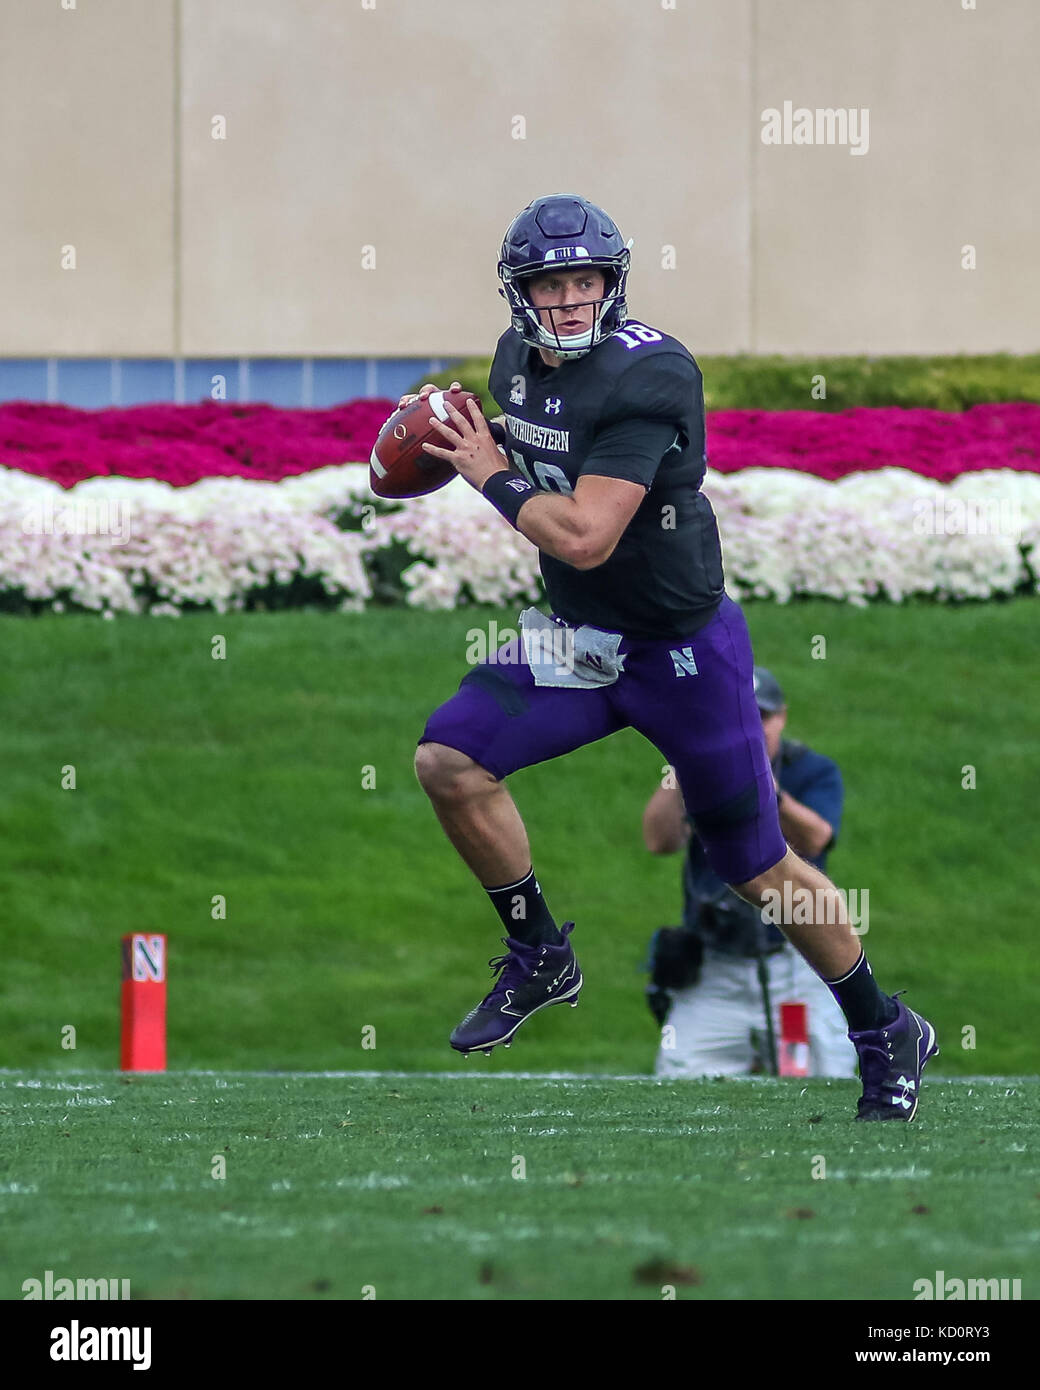 Saturday October 7th - Northwestern Wildcats quarterback Clayton Thorson (18) rolls out to the right while preparing Stock Photo